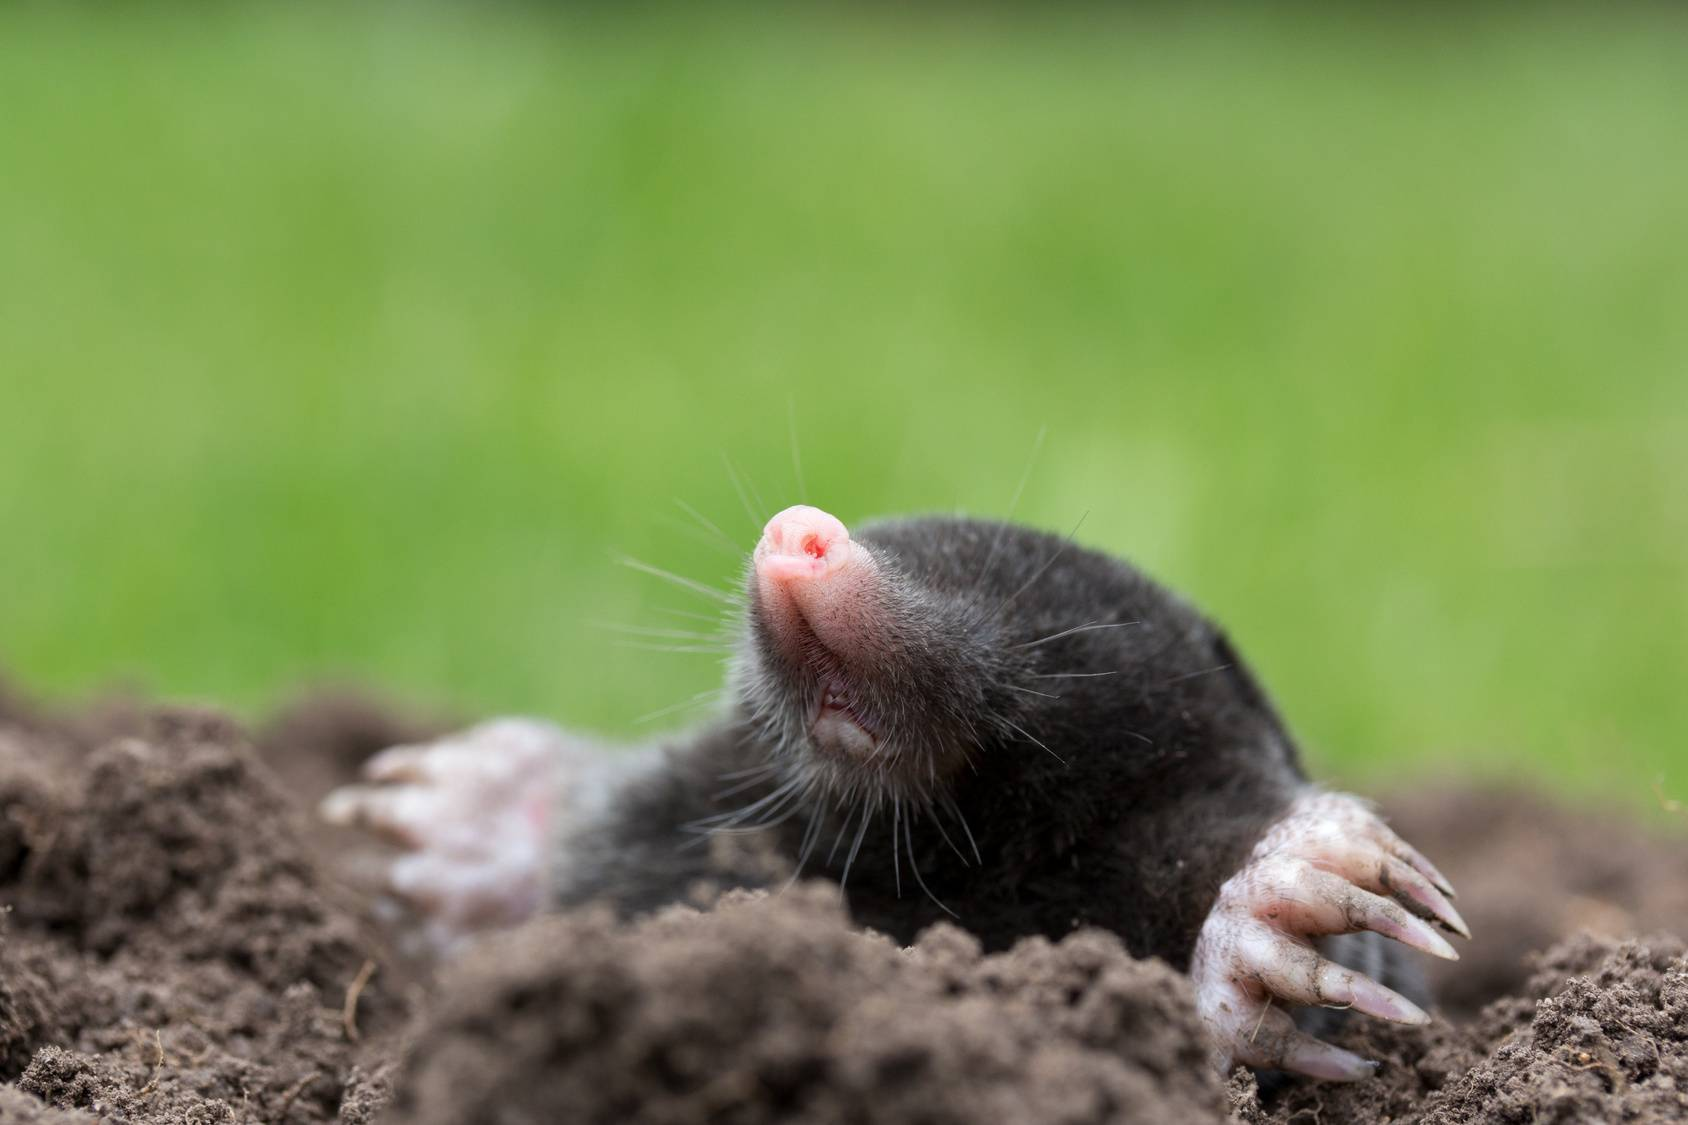 mole control and removal